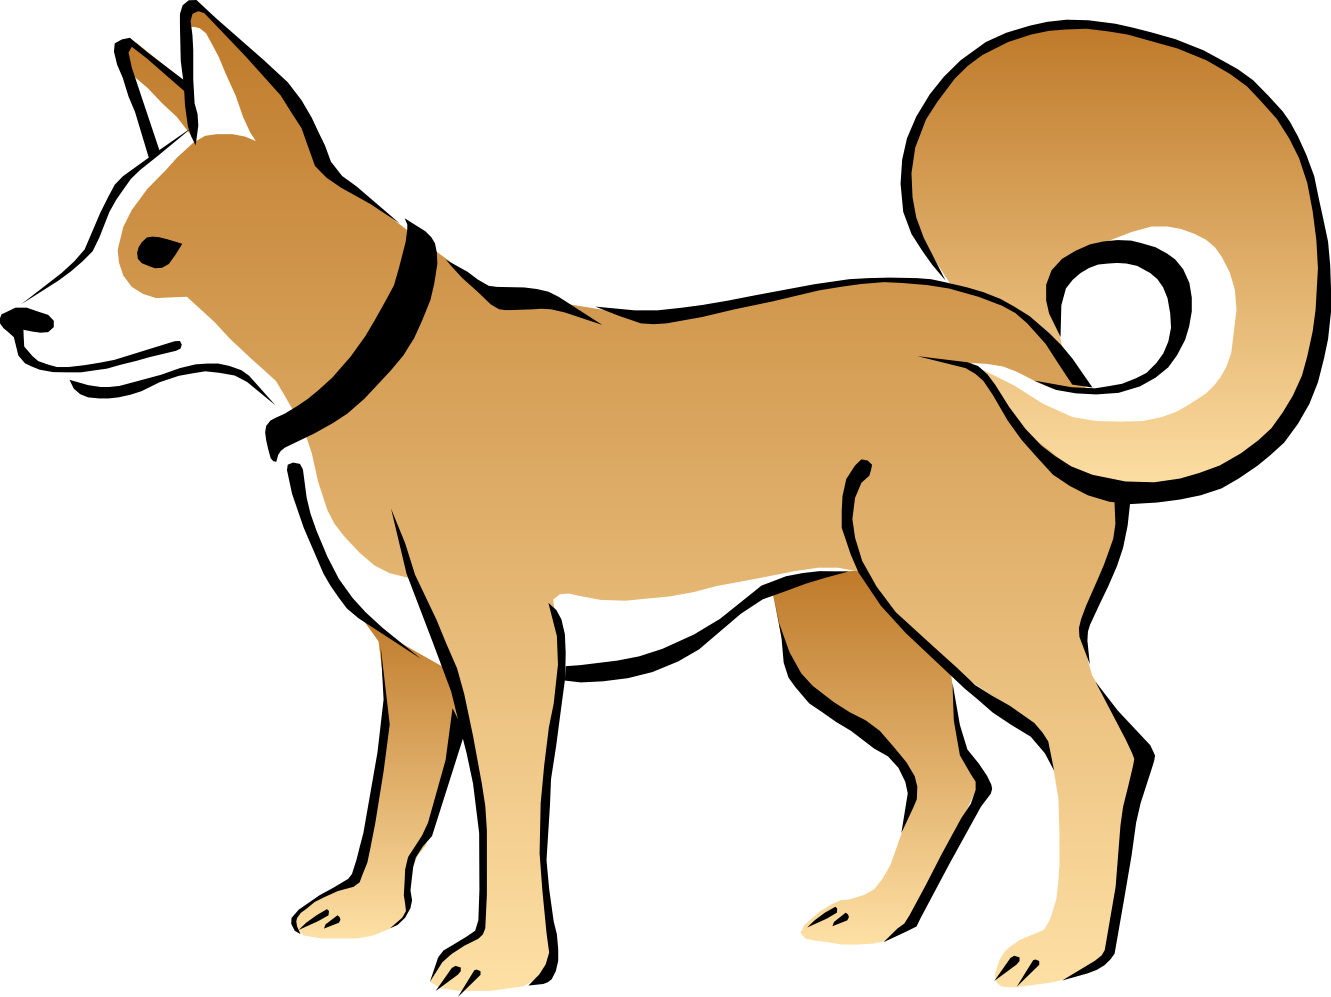 1331x997 Dog Png Image, Dogs, Puppy Pictures Free Download